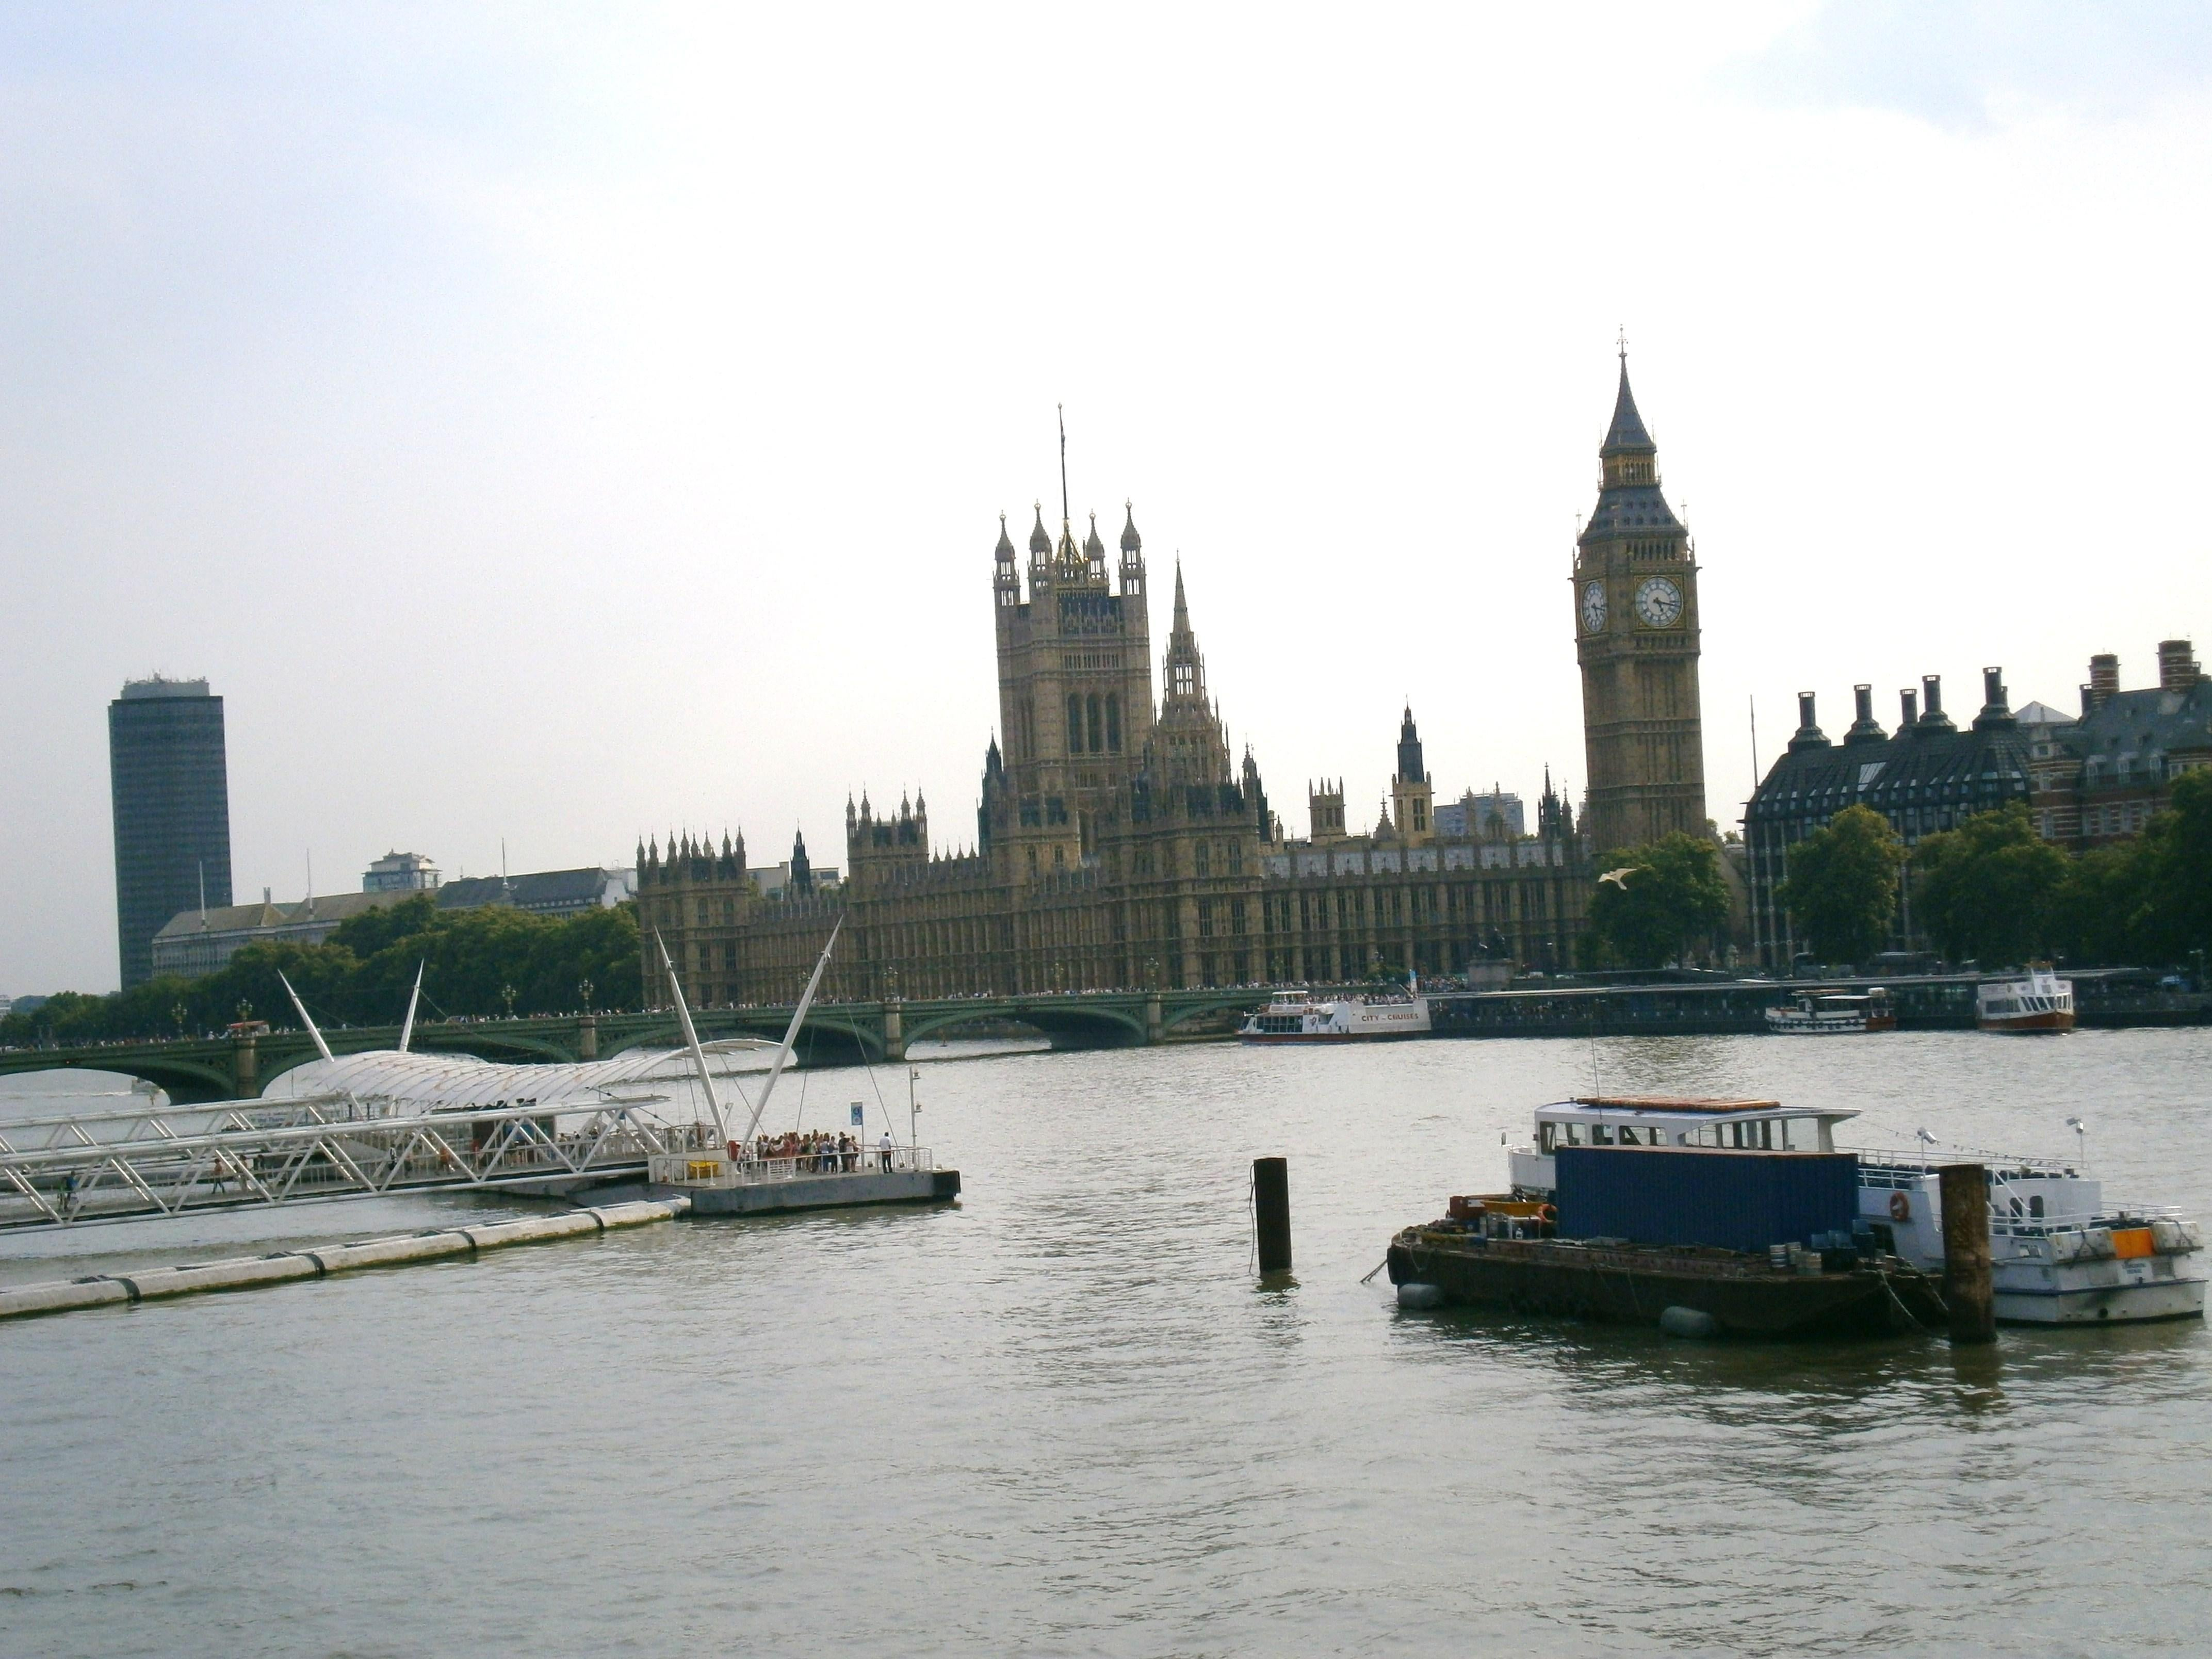 Boat in Big Ben